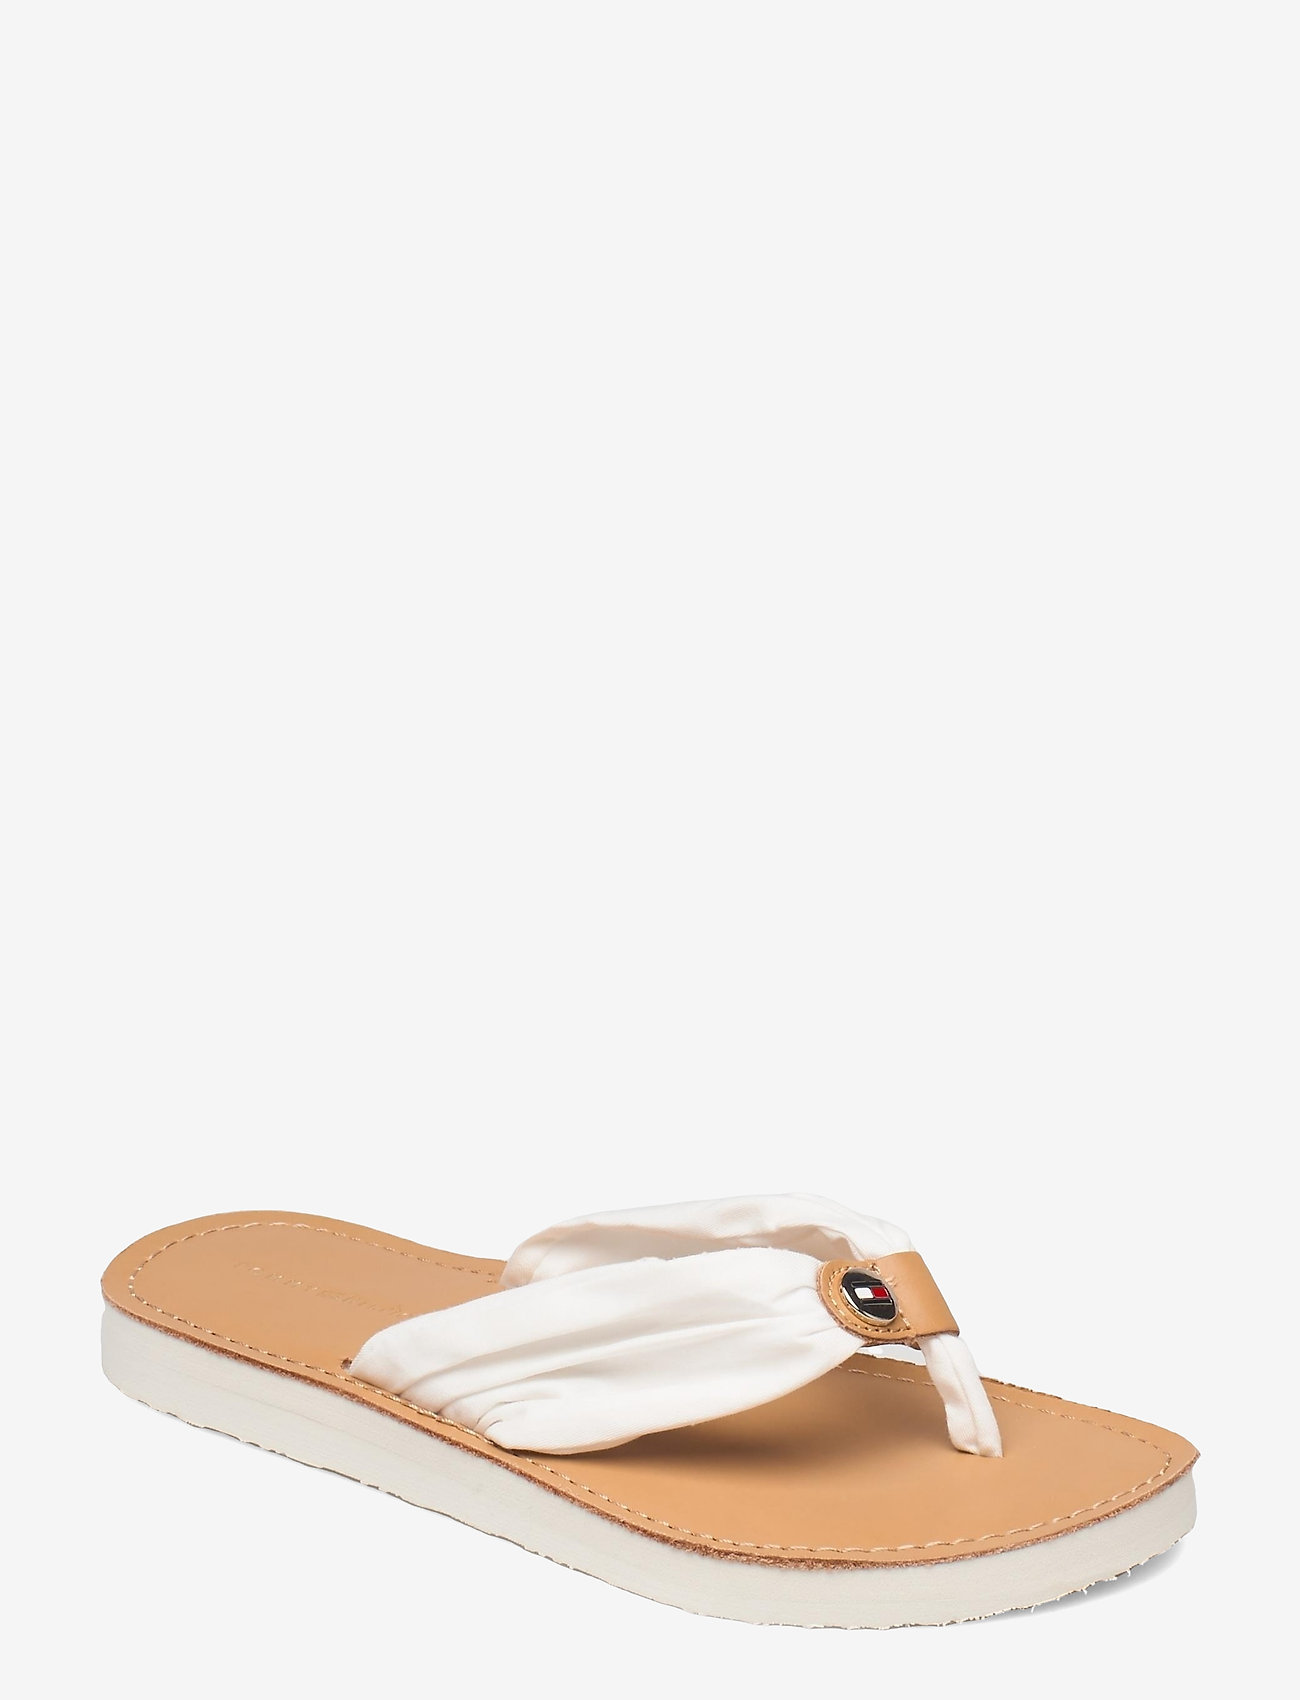 Tommy Hilfiger - LEATHER FOOTBED BEACH SANDAL - flat sandals - ivory - 0